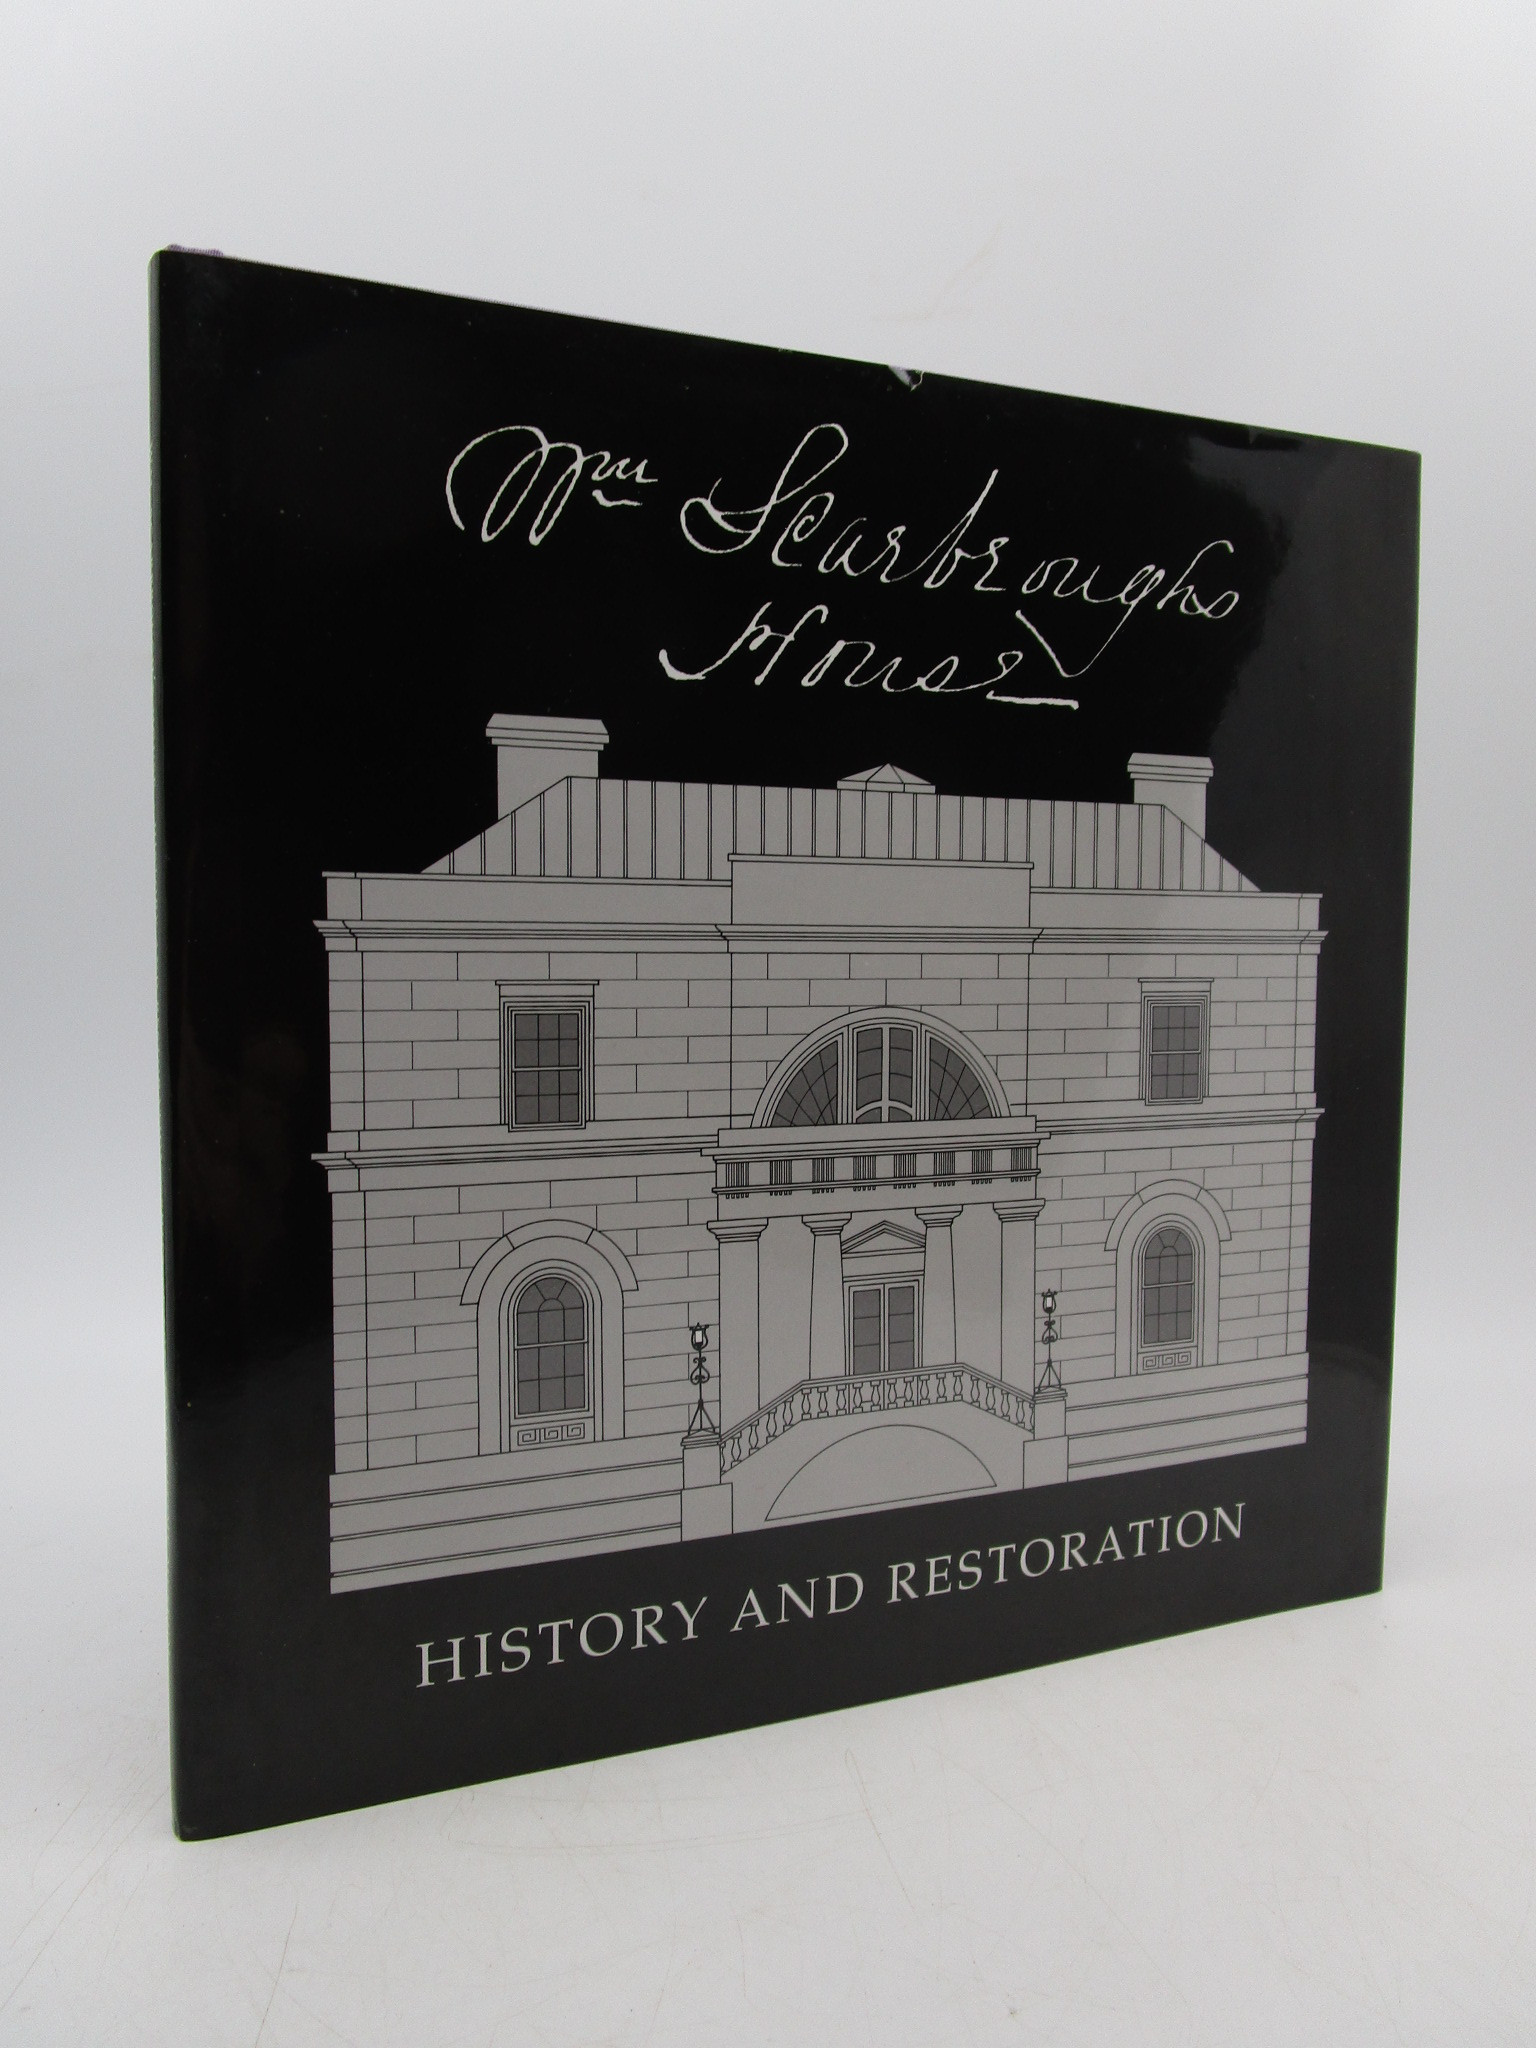 Image for Wm. Scarborough's House: History and Restoration